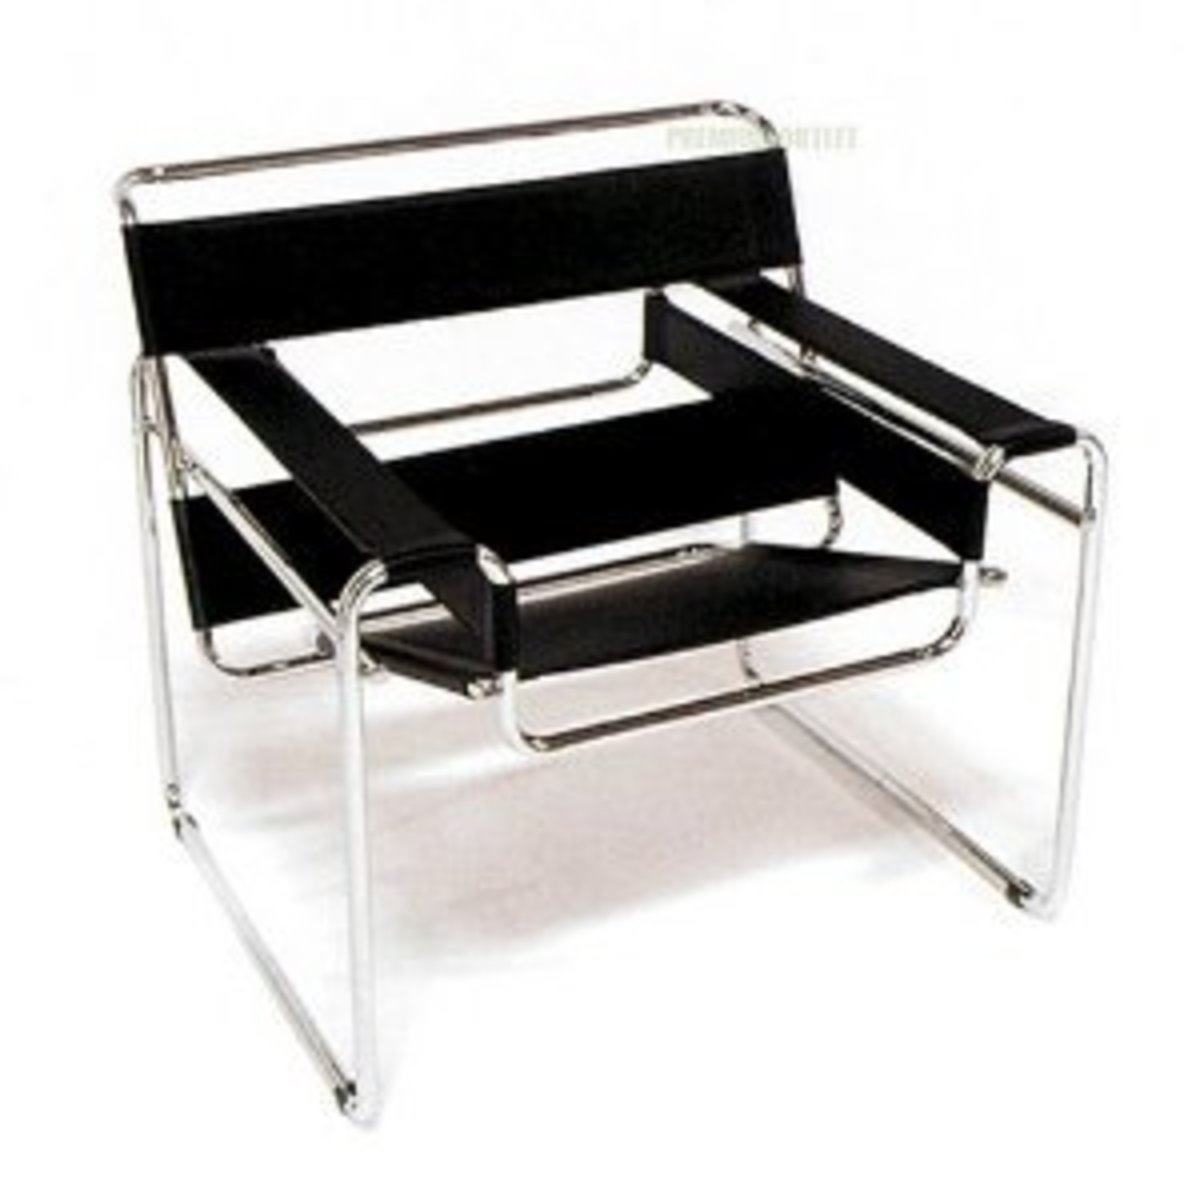 Reproduction Bauhaus chairs